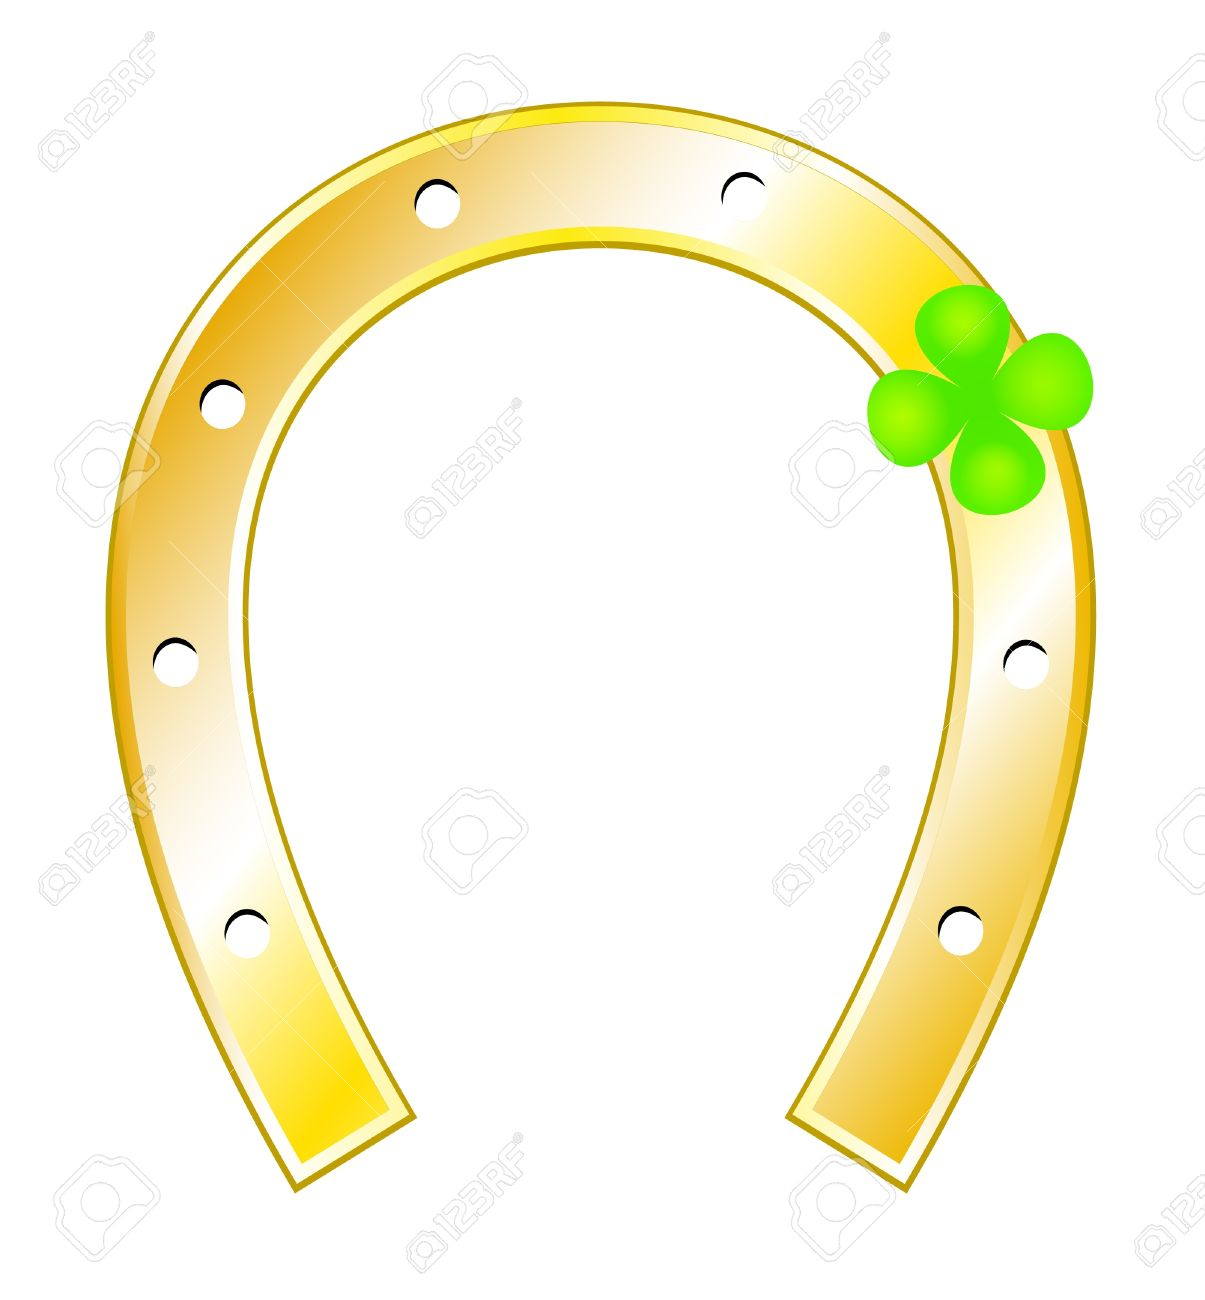 Lucky charm clip art clipart royalty free stock Lucky Charms - Horseshoes And Clover With Four Leaf Royalty Free ... clipart royalty free stock